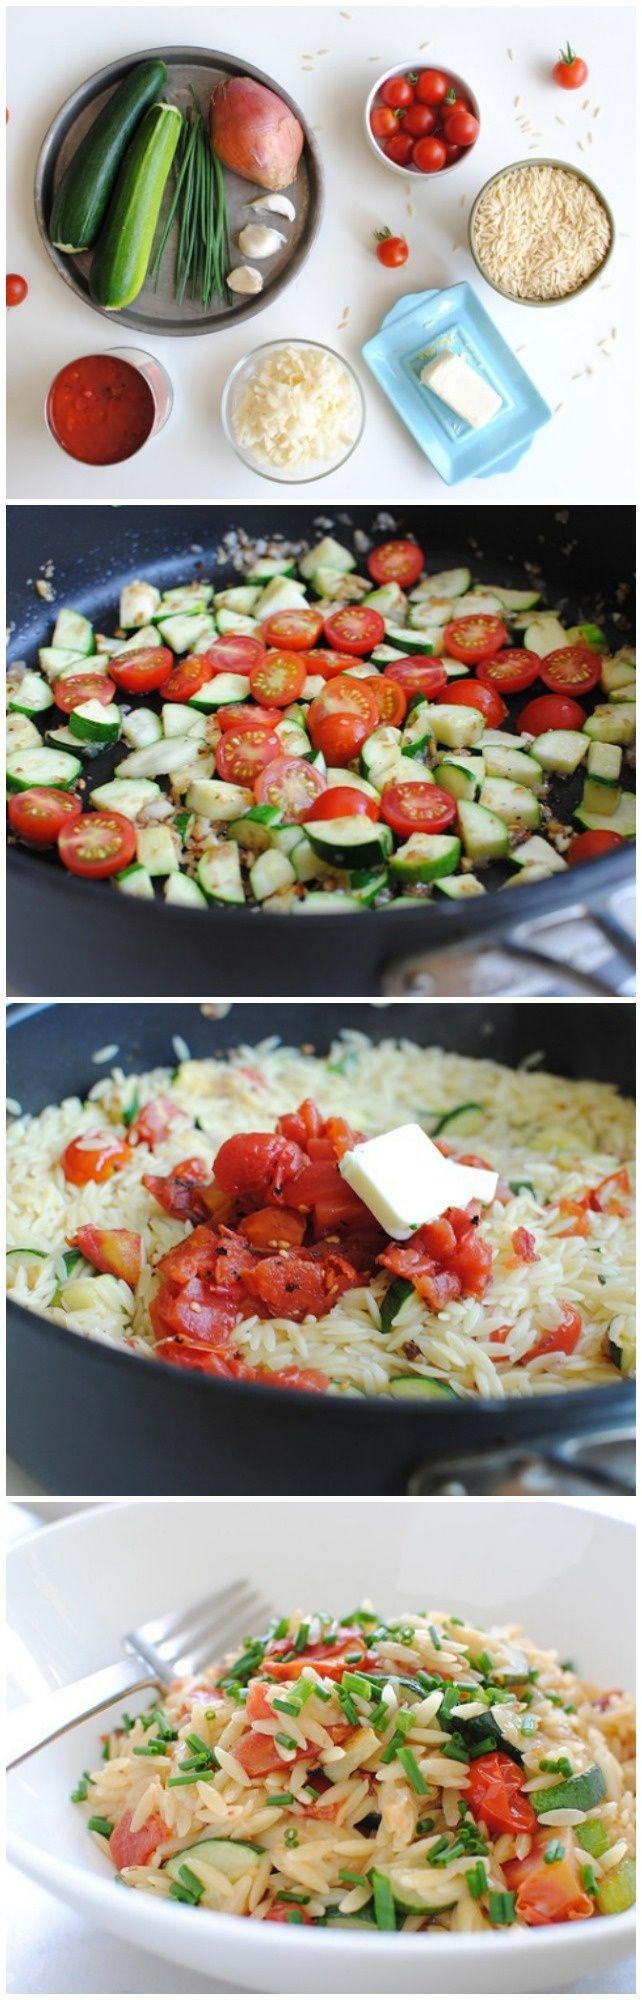 Cheesy Orzo + Garden Veggies #foods #recipes